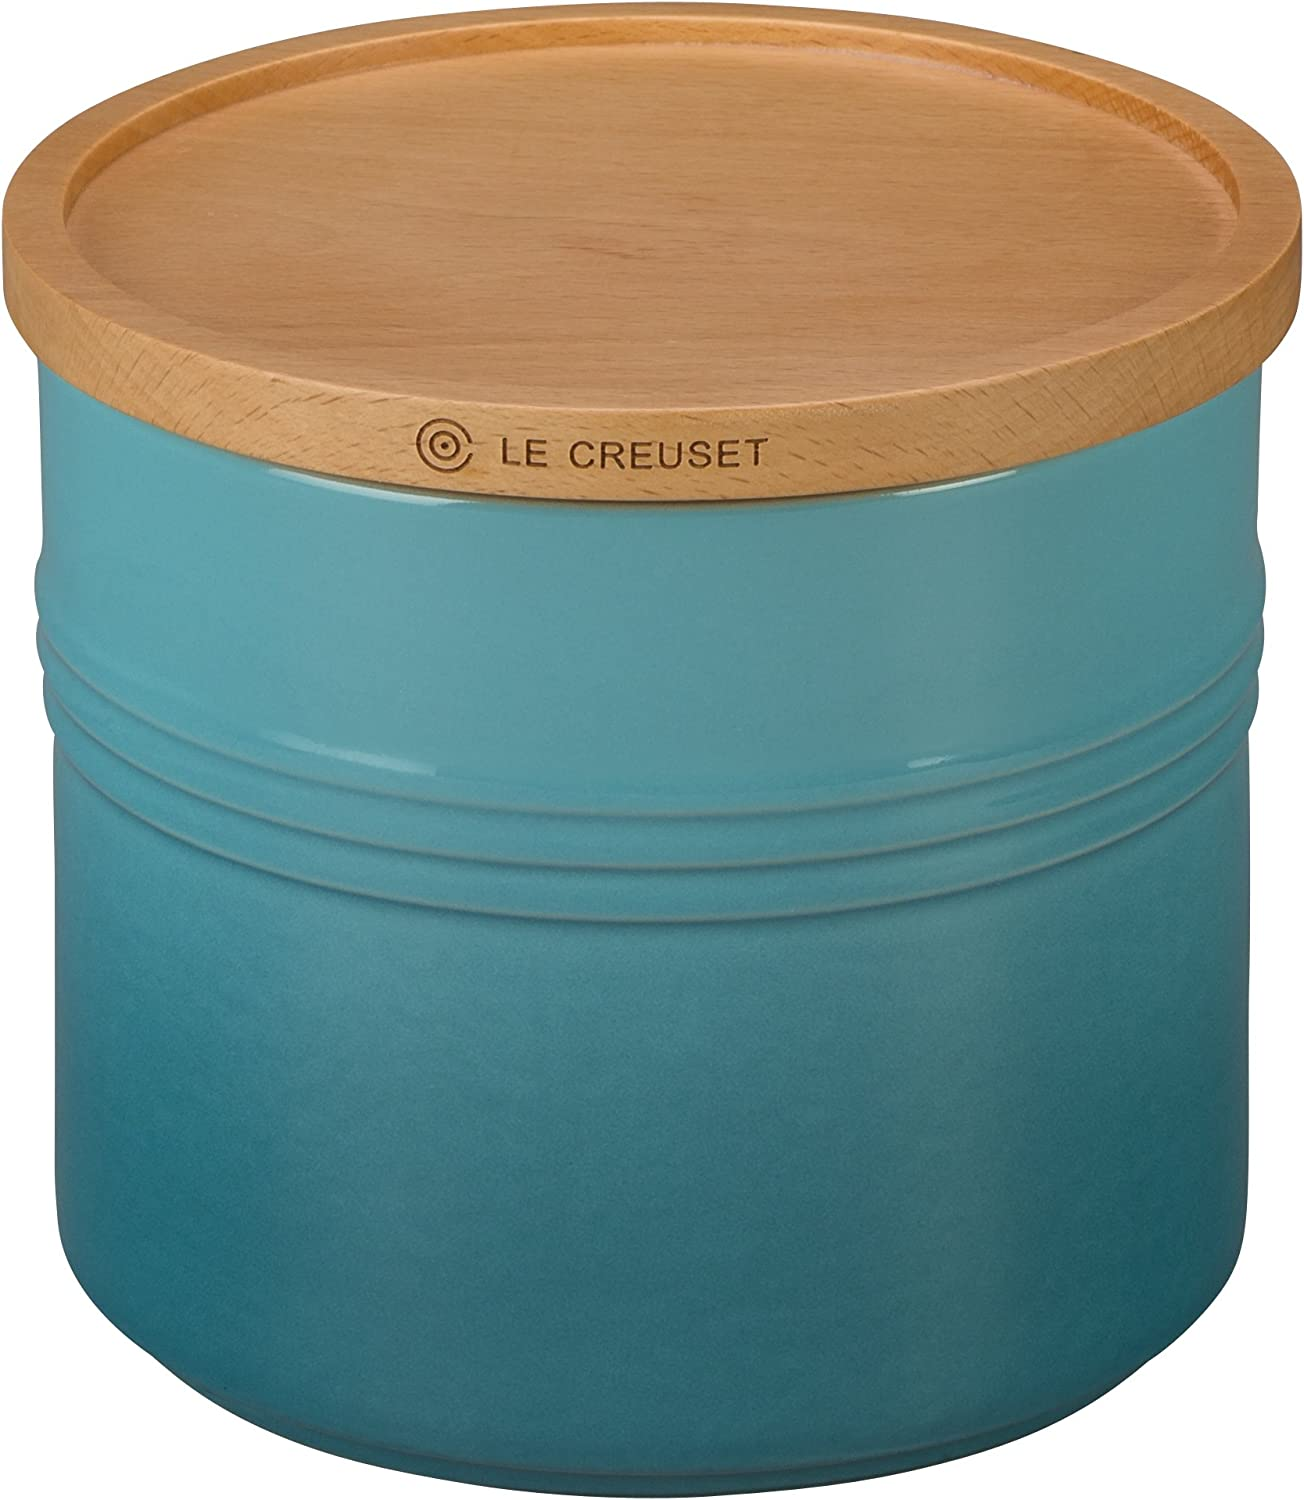 "Le Creuset Stoneware Canister with Wood Lid, 1.5 qt. (5.5"" diameter), Caribbean: Kitchen & Dining"